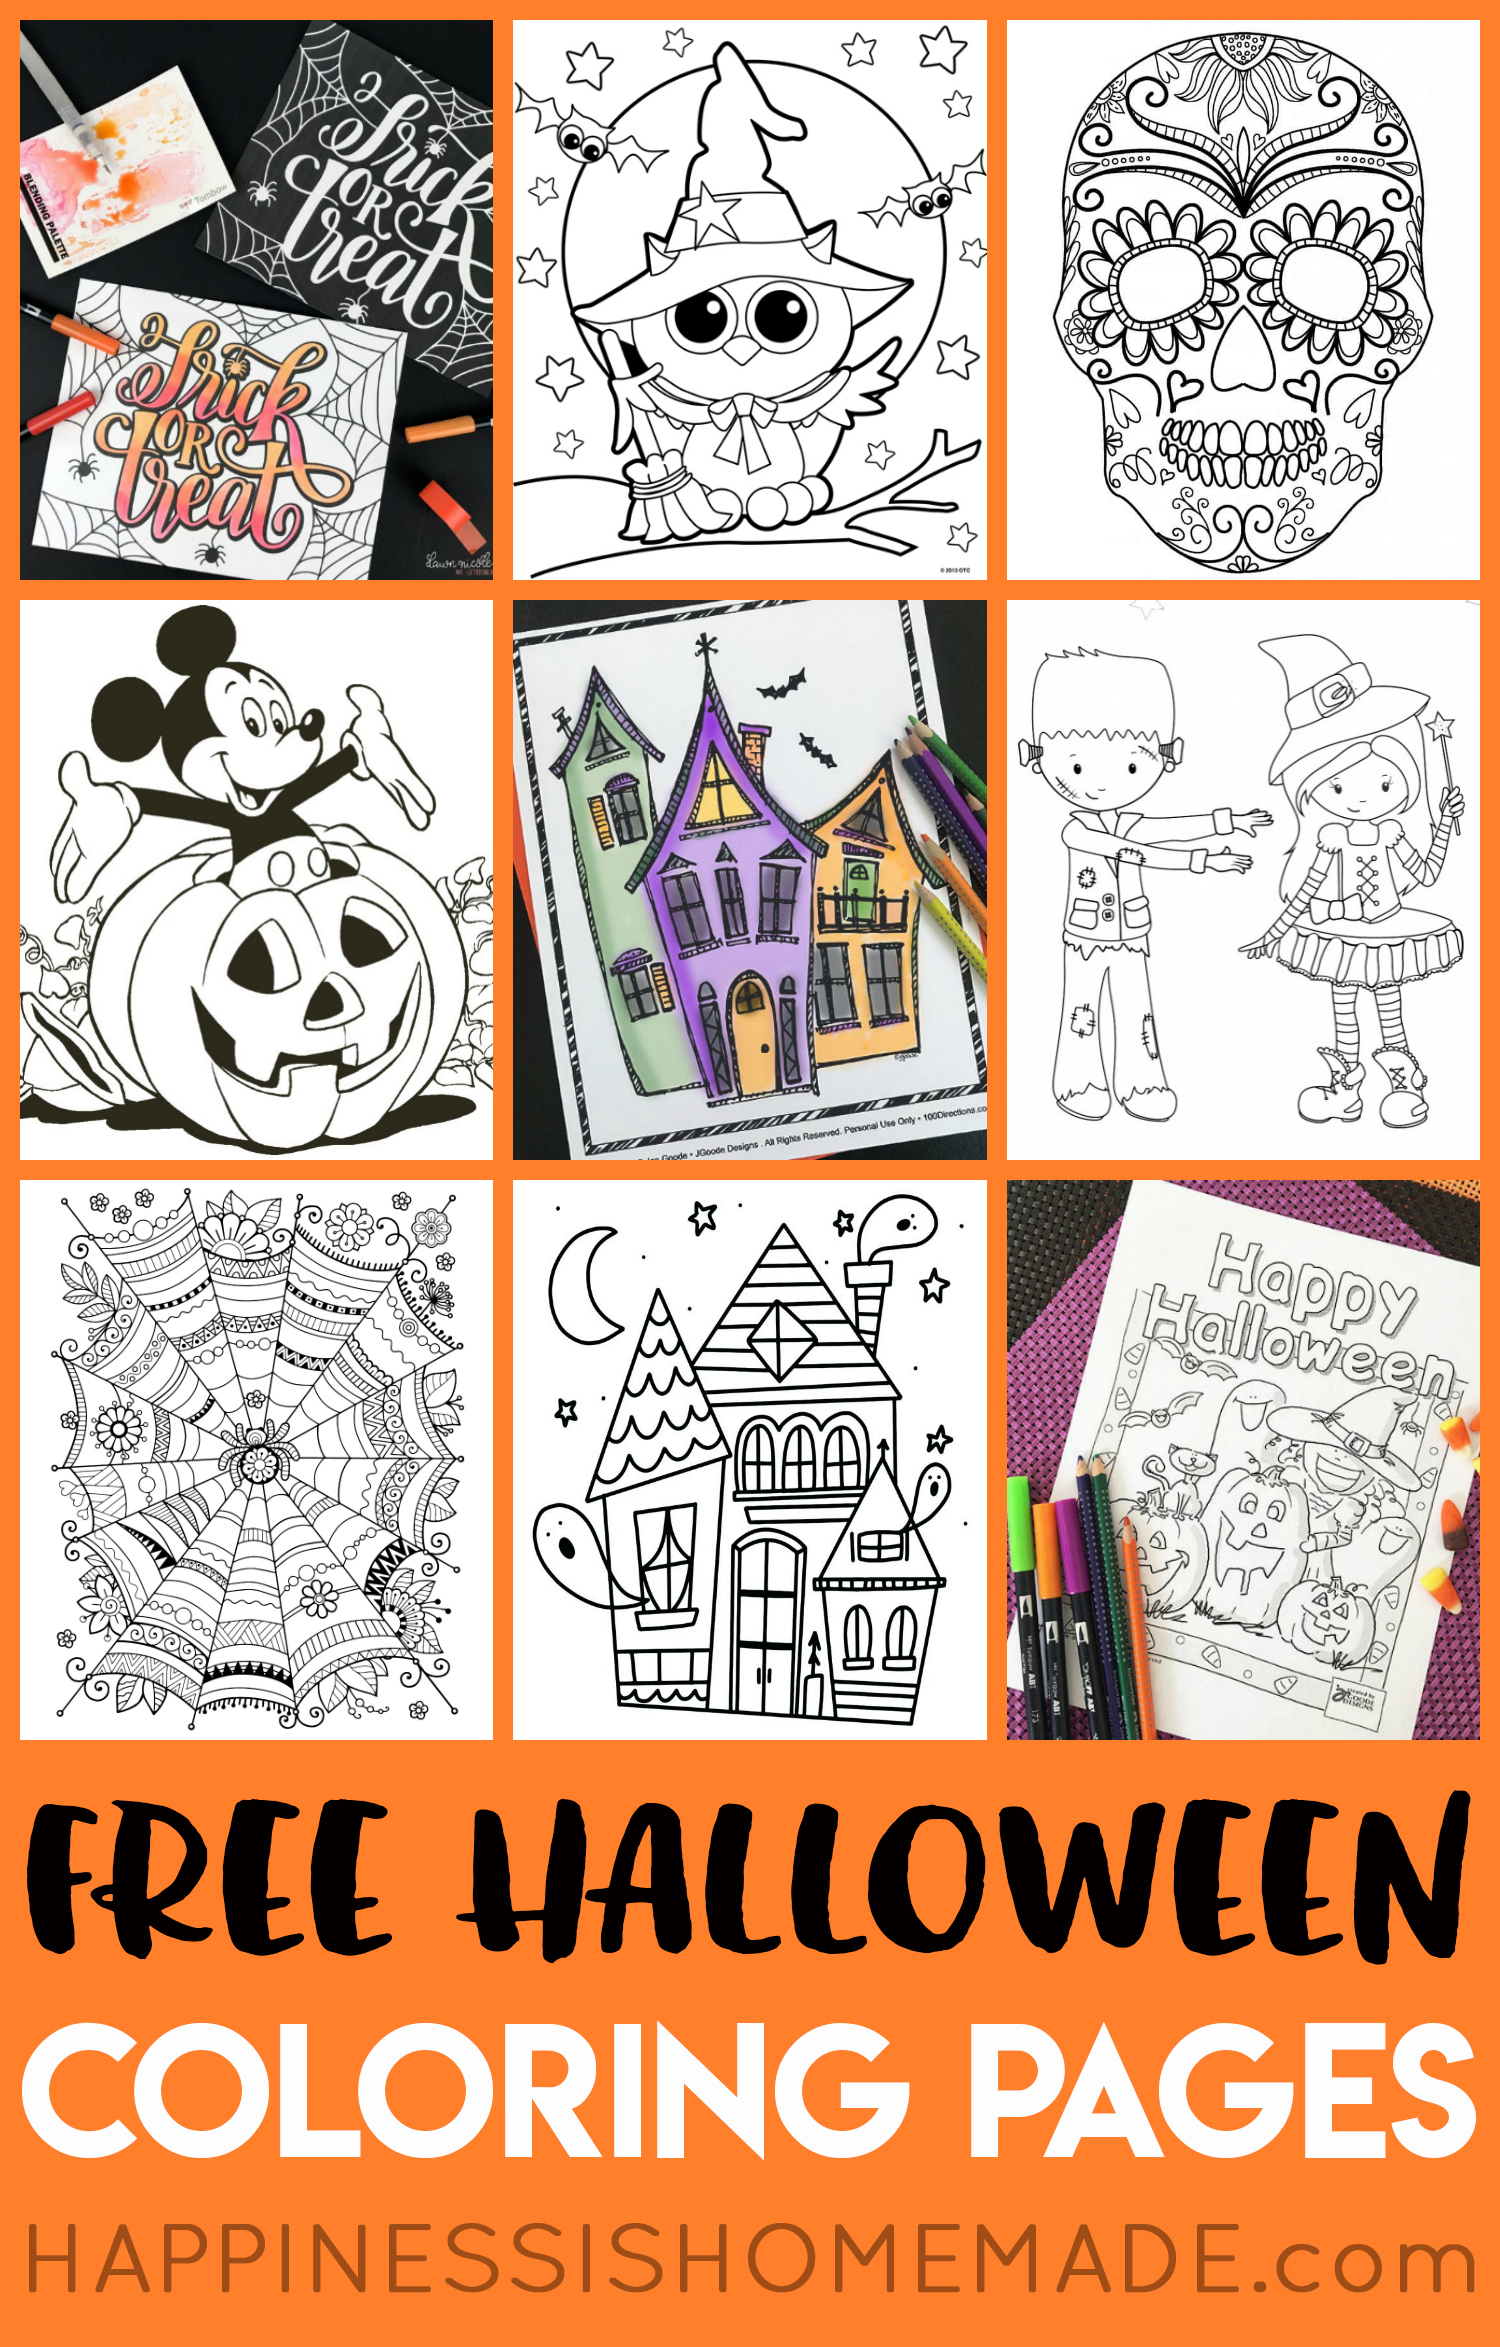 Free Halloween Coloring Pages For Adults & Kids - Happiness Is Homemade - Printable Halloween Puzzle Pages